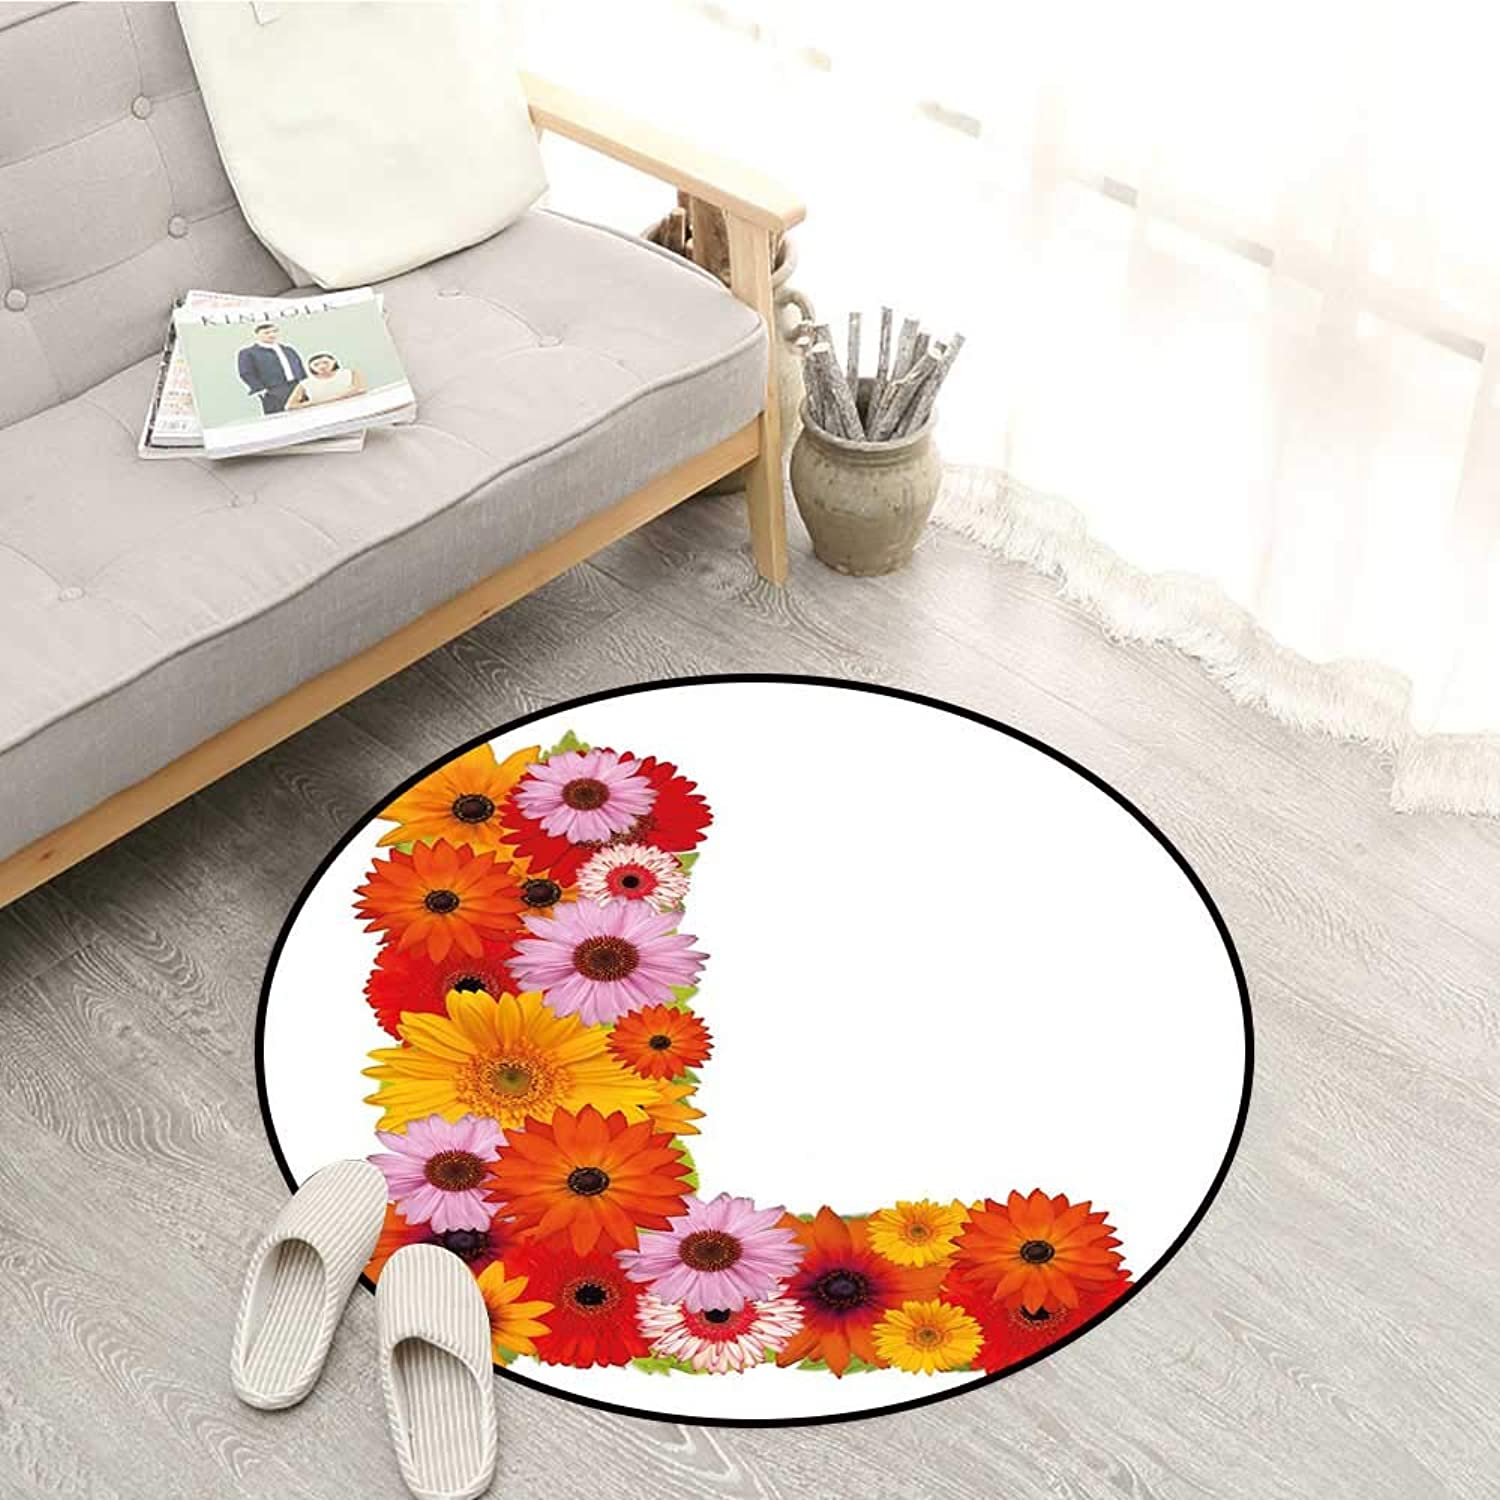 Letter L Living Room Round Rugs Flower Alphabet with Gerbera Petals Fragrance Flourishing Nature Garden Symbols Sofa Coffee Table Mat 4'7  Multicolor